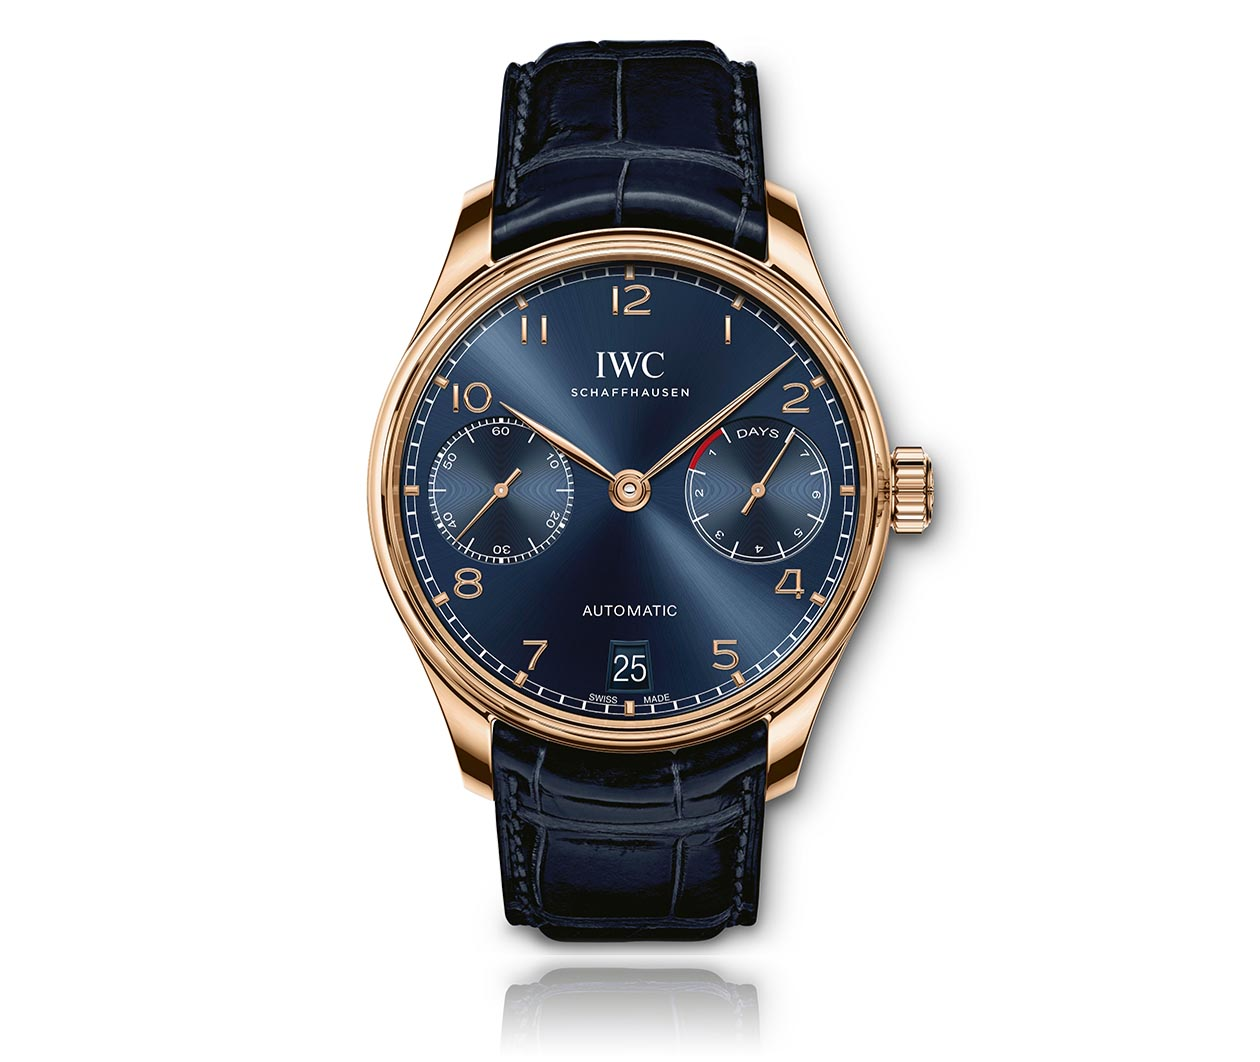 IWC Portugieser AutomaticBoutiqueEdition IW500713 Carousel 1 FINAL